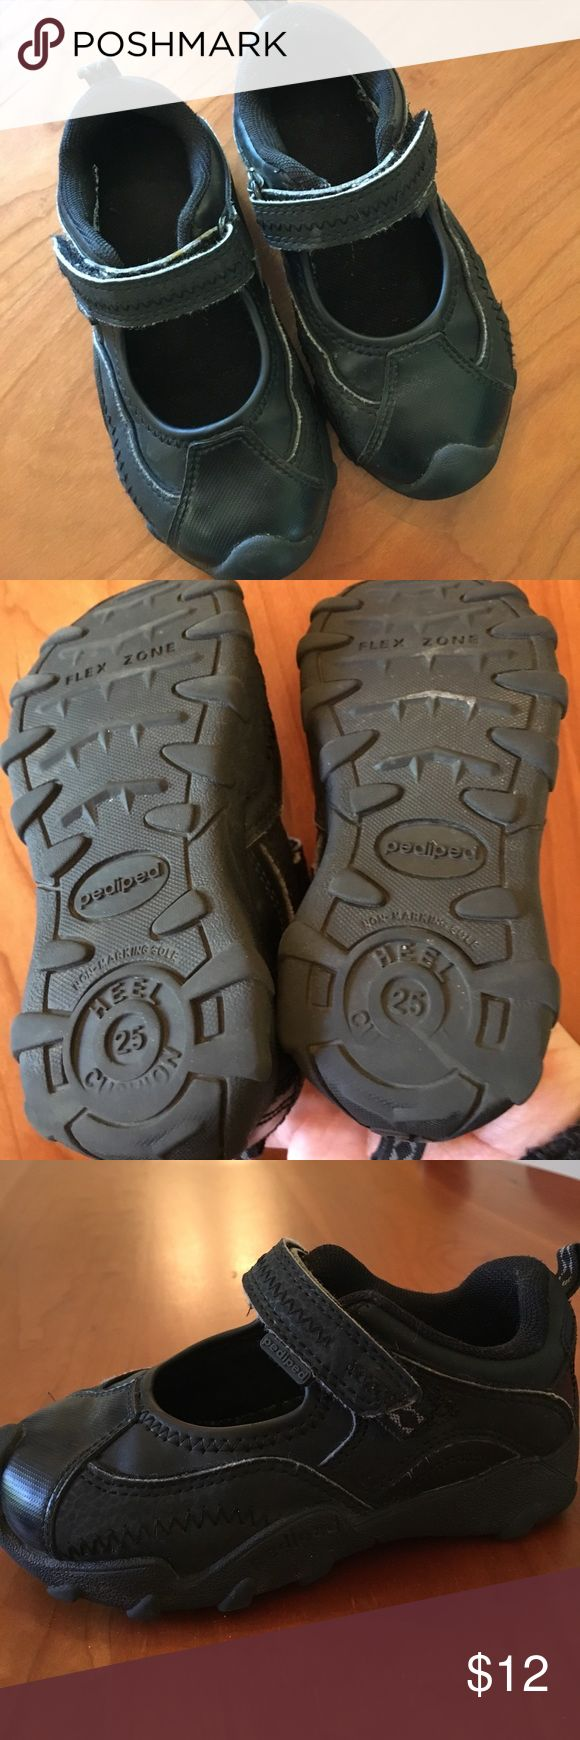 Pediped toddler Mary Jane size 25/8.5 European size 25 Mary Jane sneaker shoes in all black. Flexible sole. Good condition. pediped Shoes